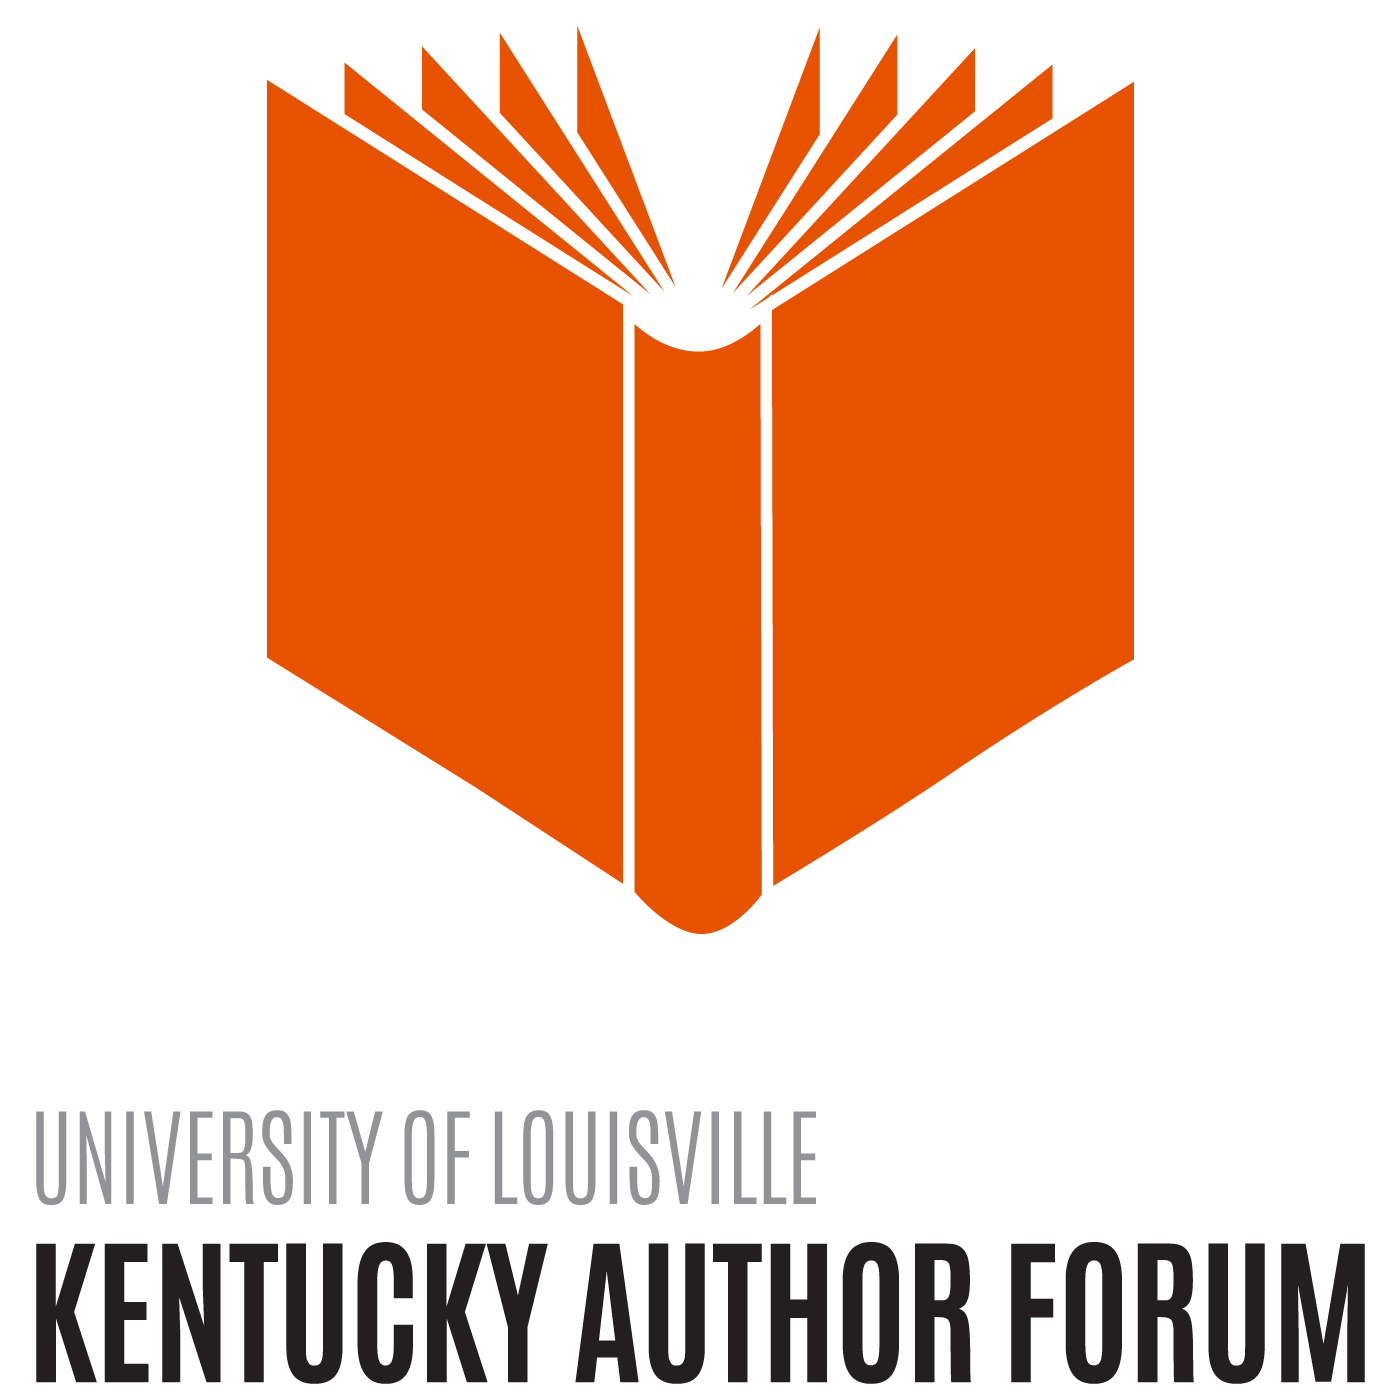 The Kentucky Author Forum